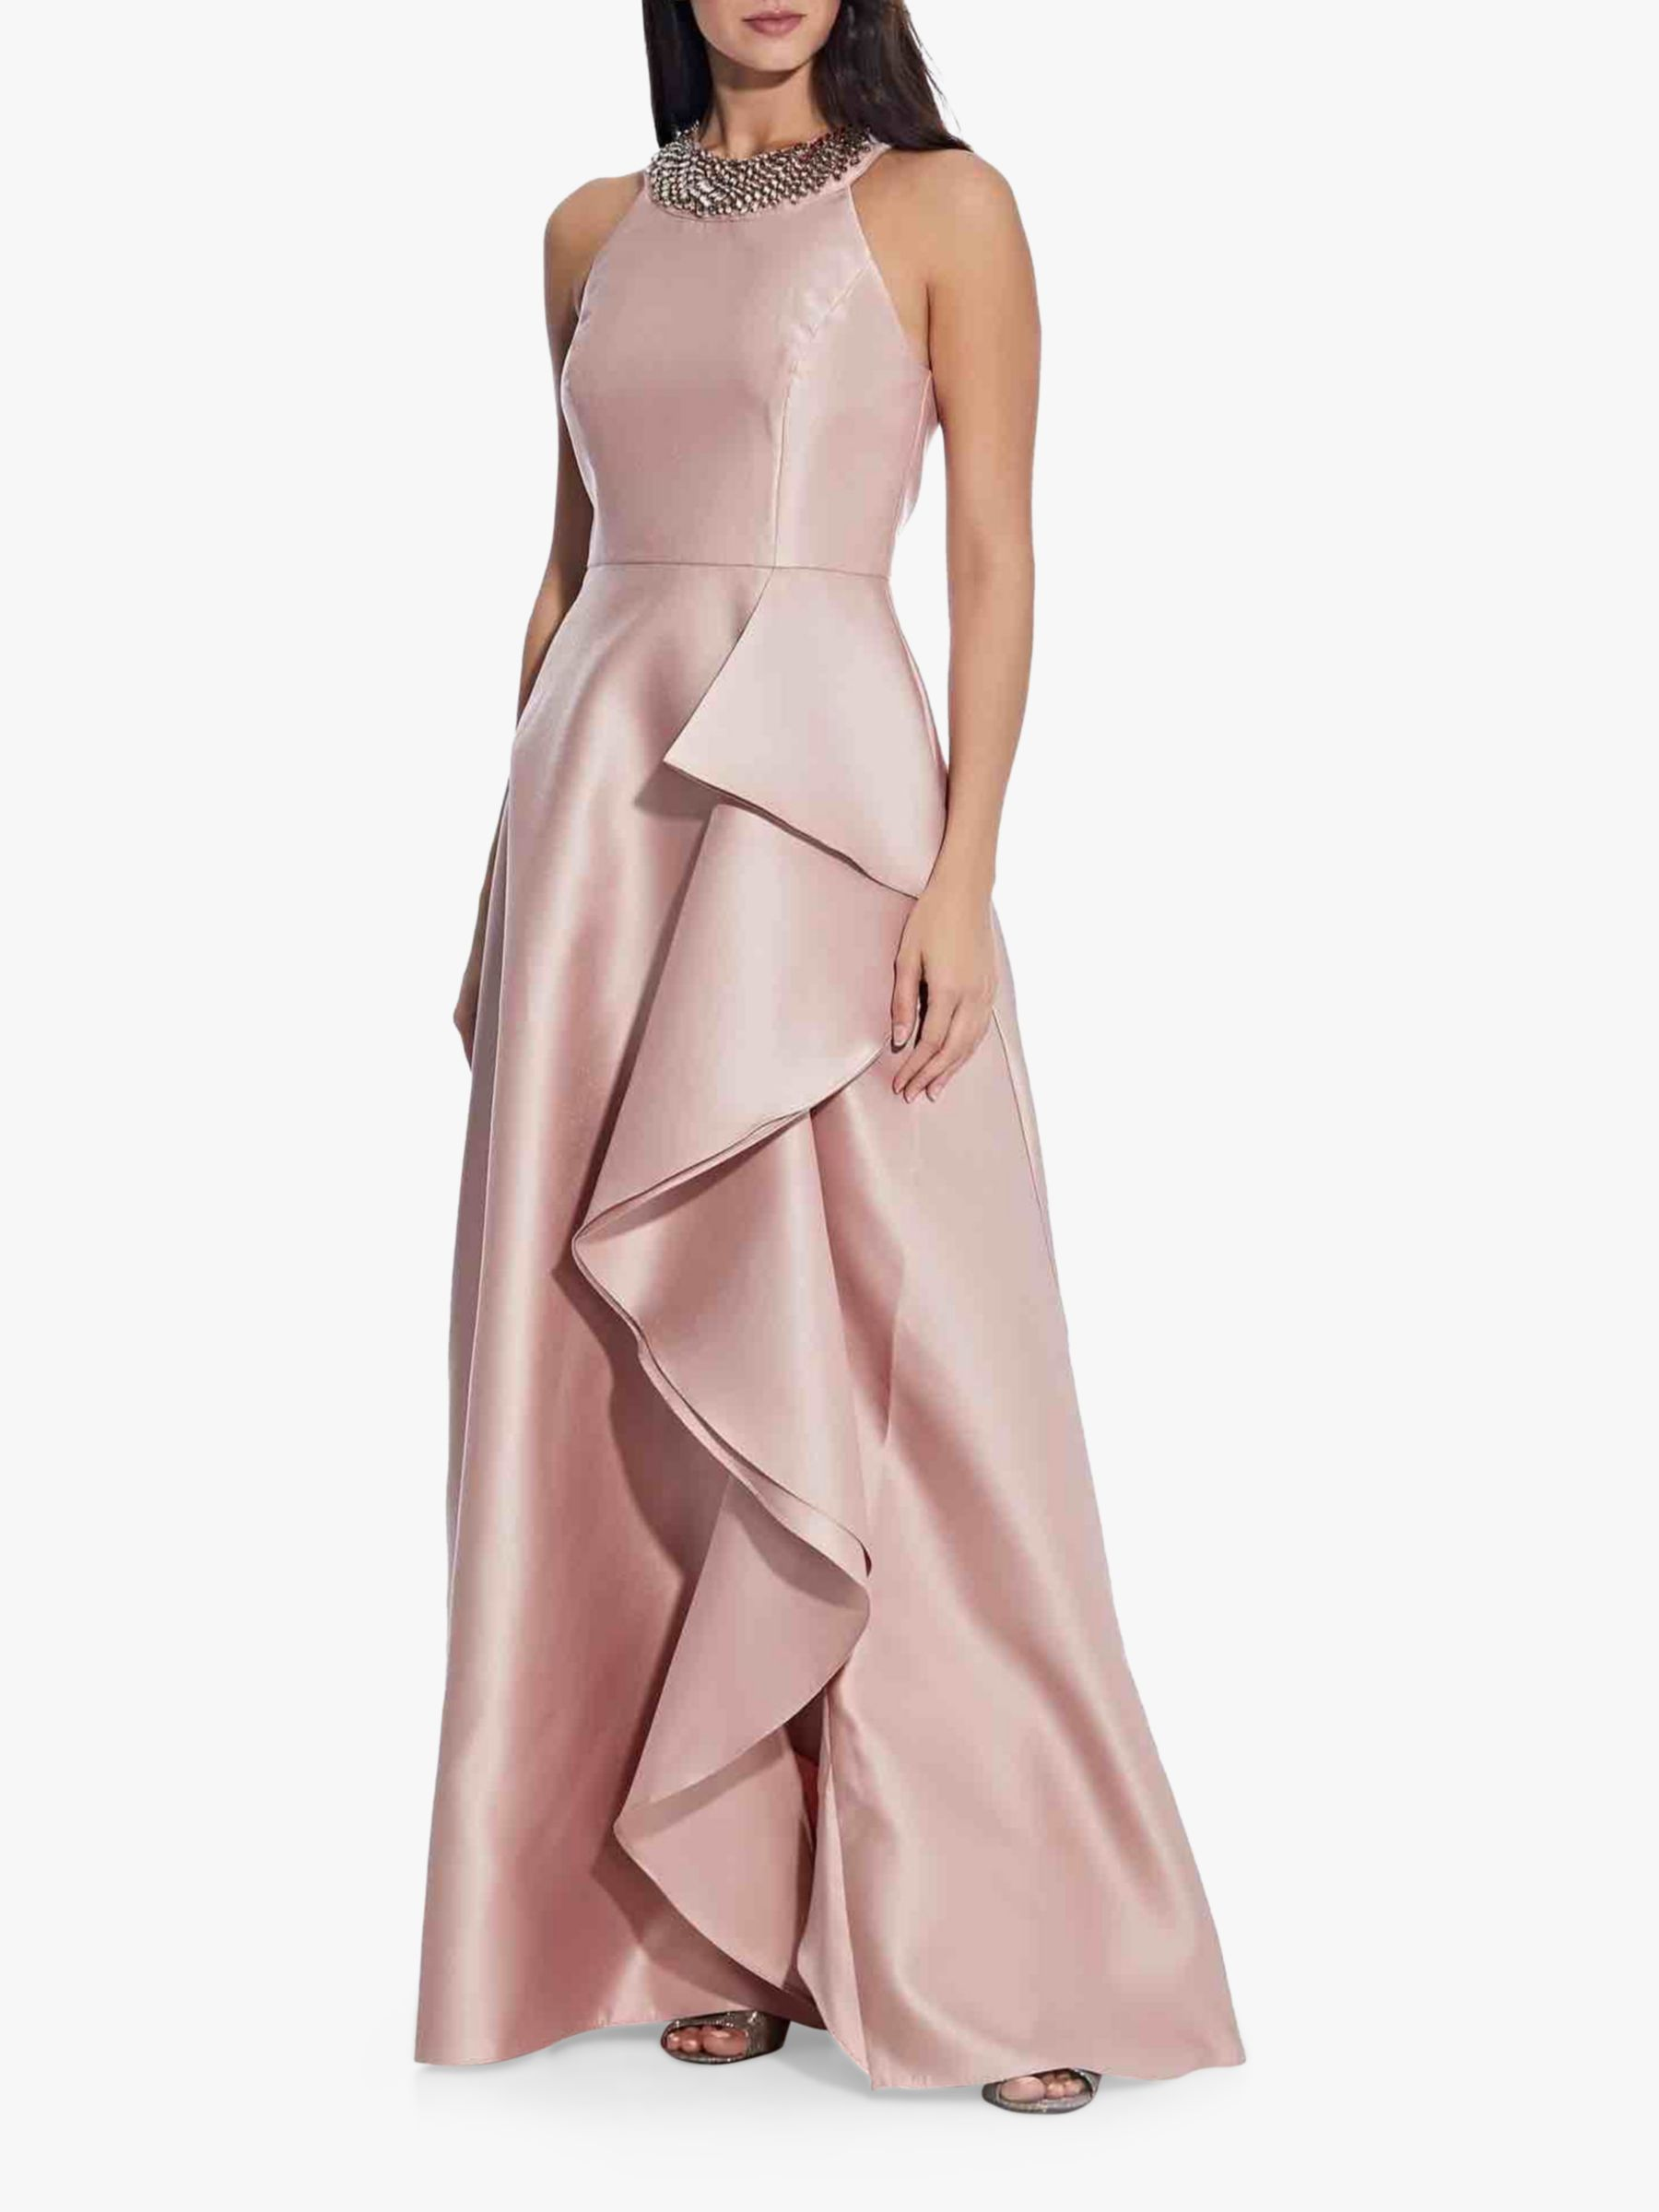 Adrianna Papell Mikado Cascade Gown in 2020 | Dress shapes